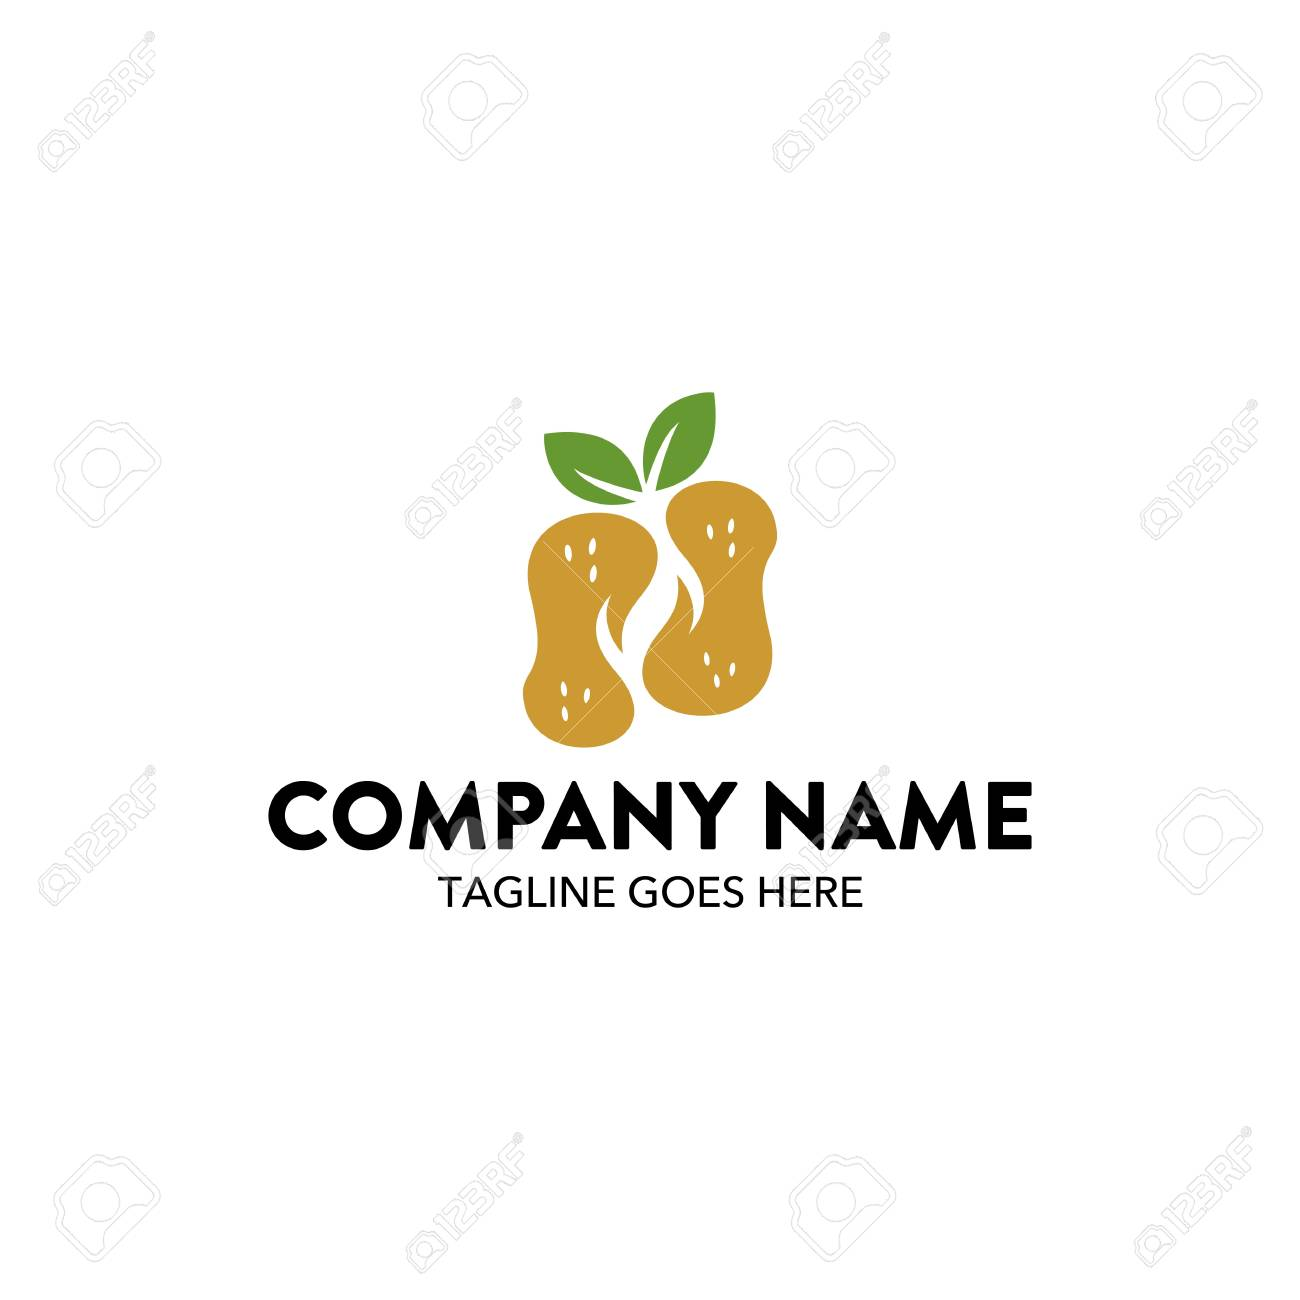 peanuts with leaves bakery logo royalty free cliparts vectors and